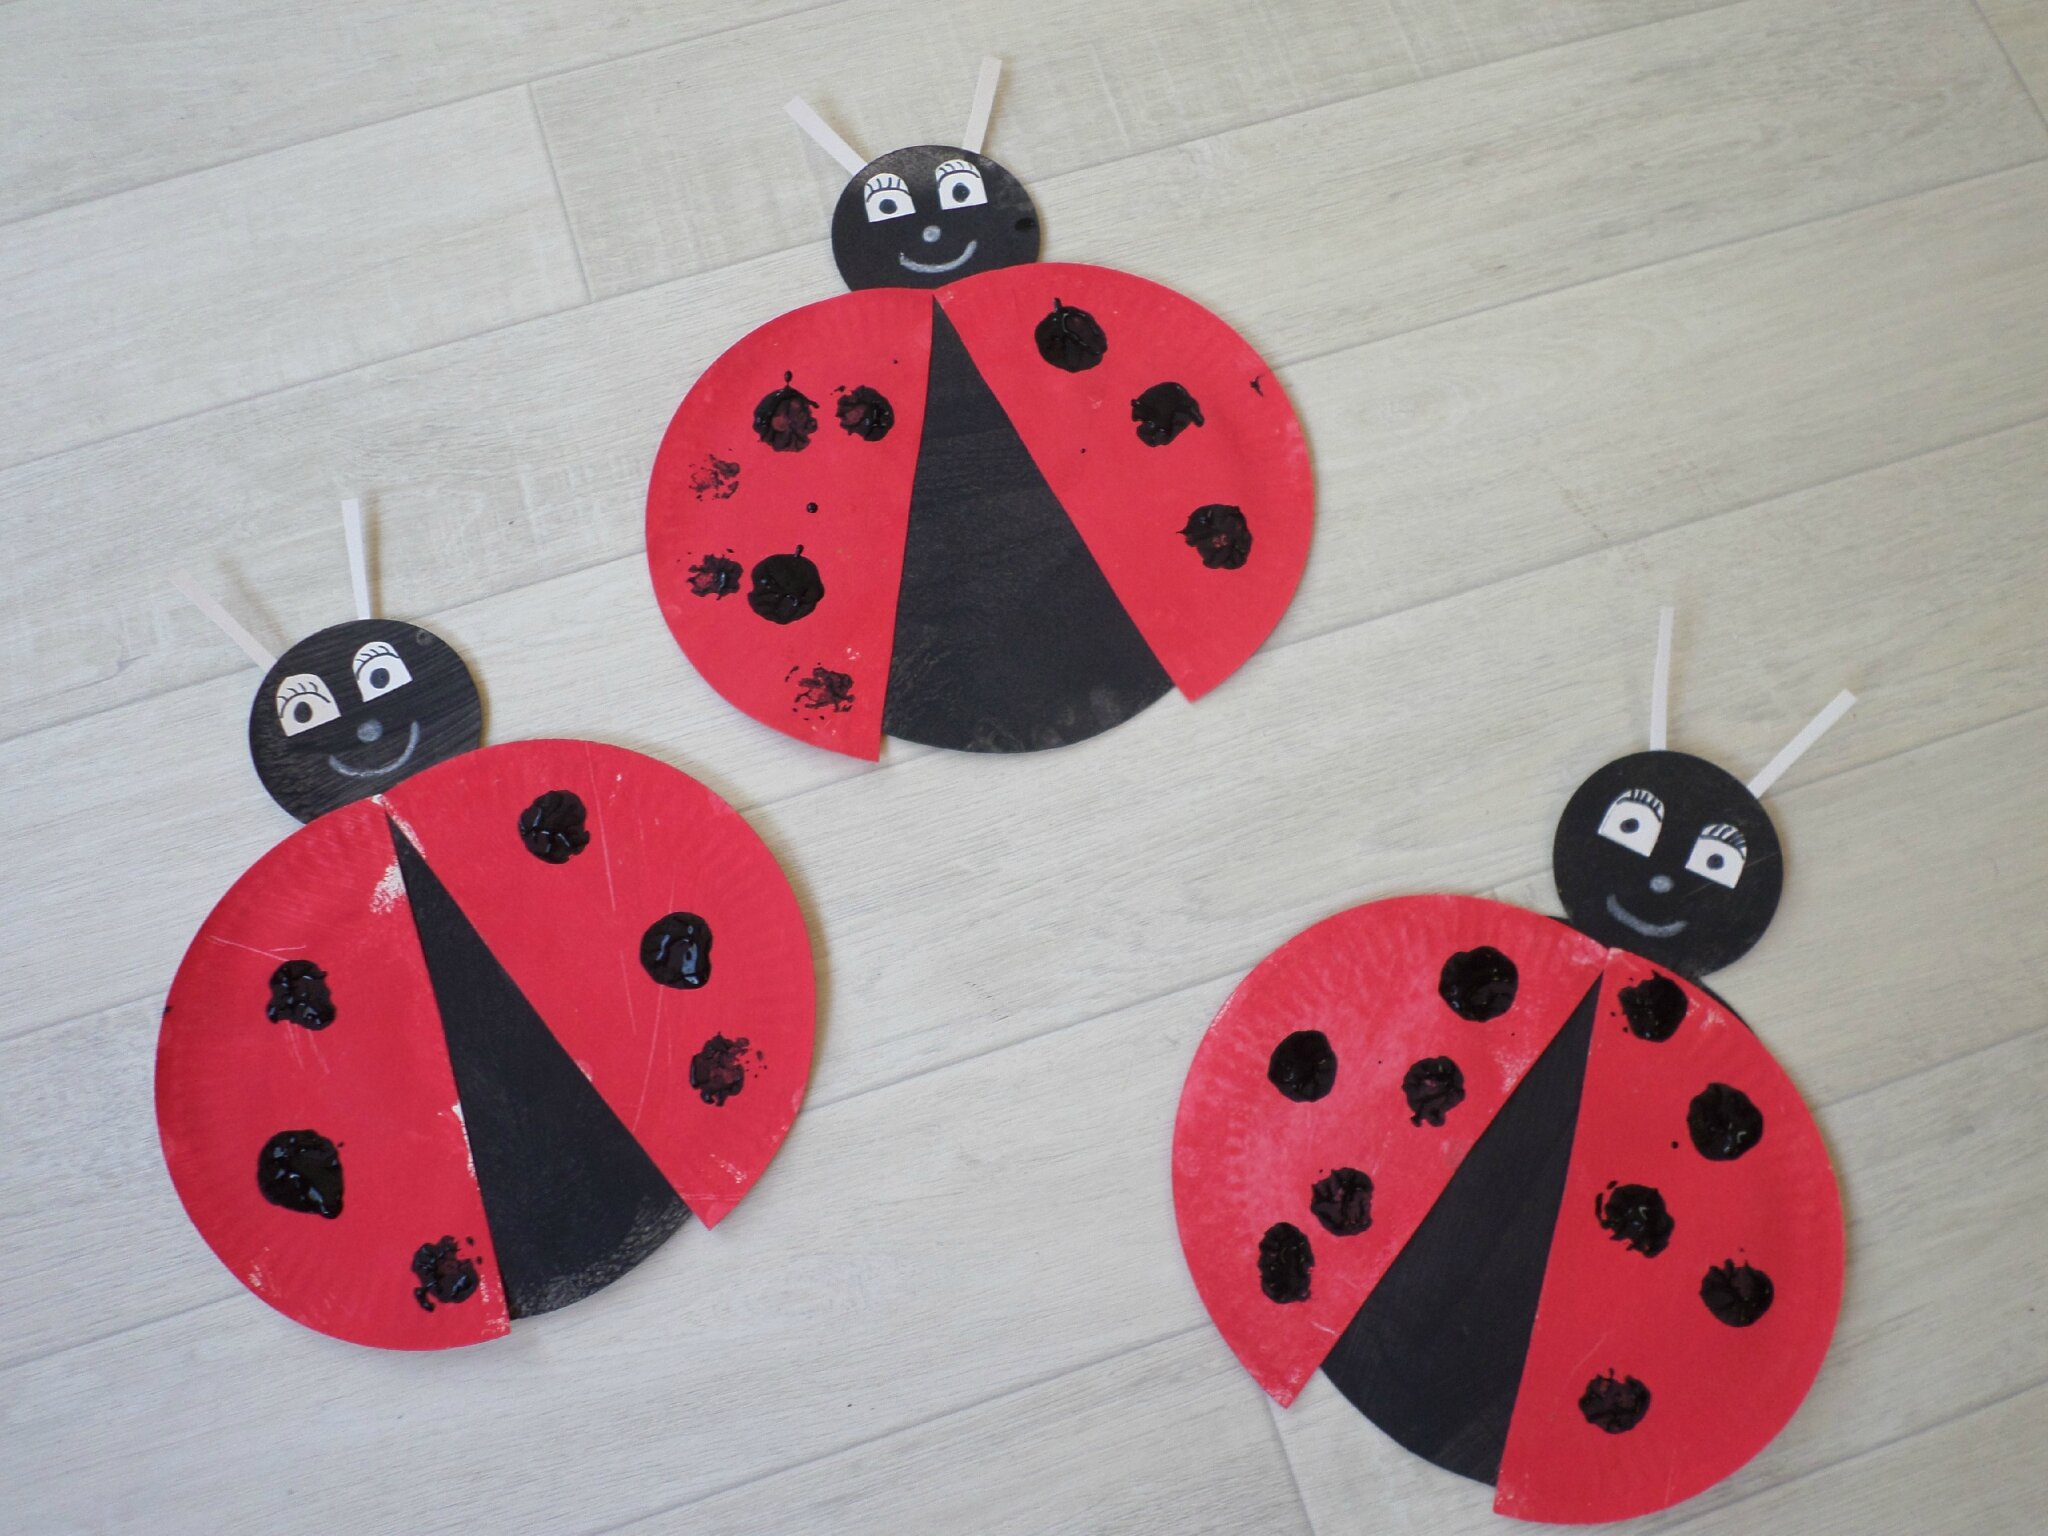 bricolage coccinelle carton my blog. Black Bedroom Furniture Sets. Home Design Ideas